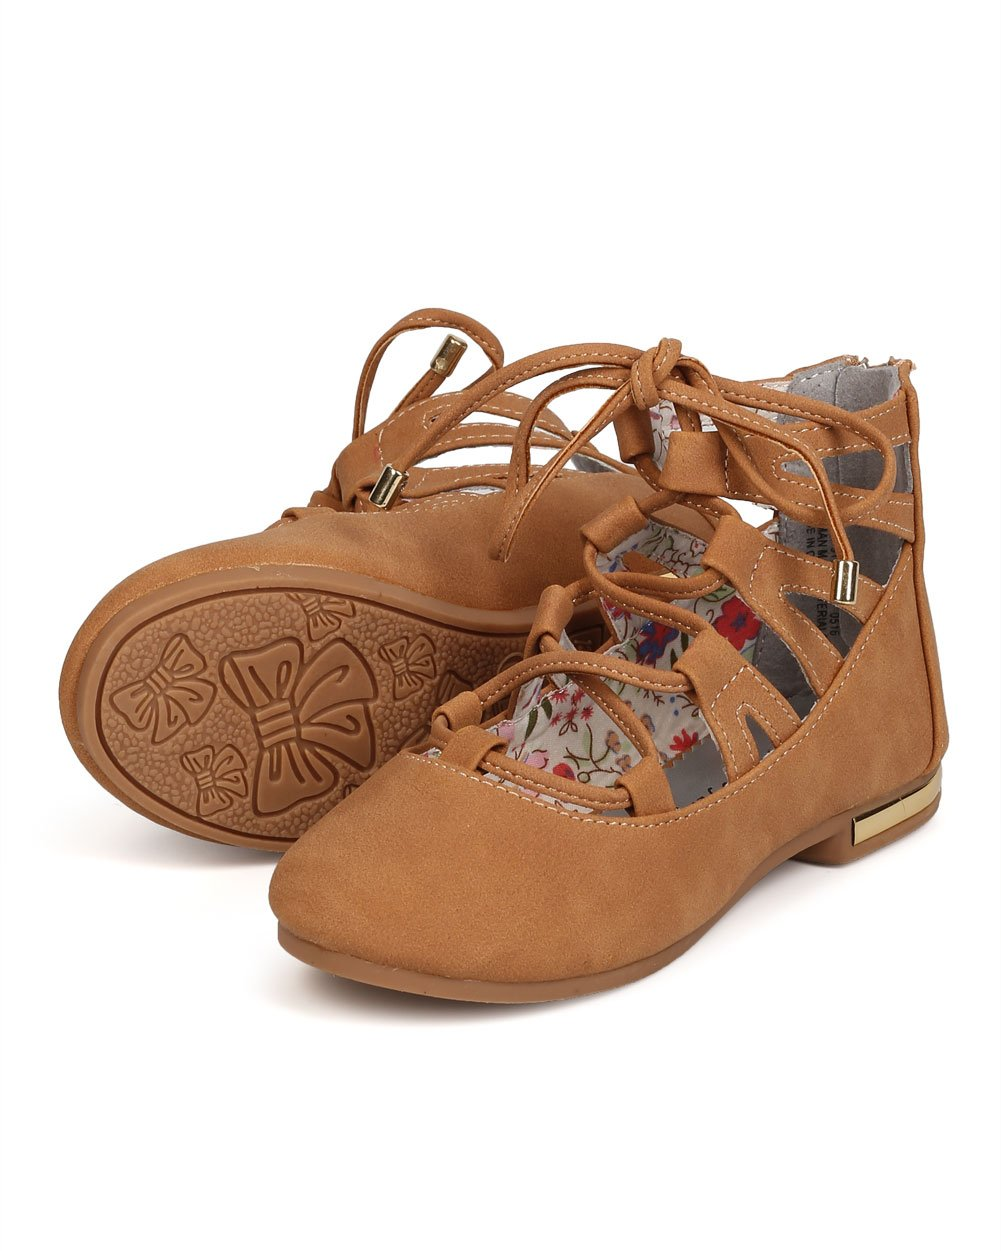 Nubuck Round Toe Lace up Flat (Toddler Girl/Little Girl/Big Girl) FC71 - Beige (Size: Toddler 10) by Little Angel (Image #4)